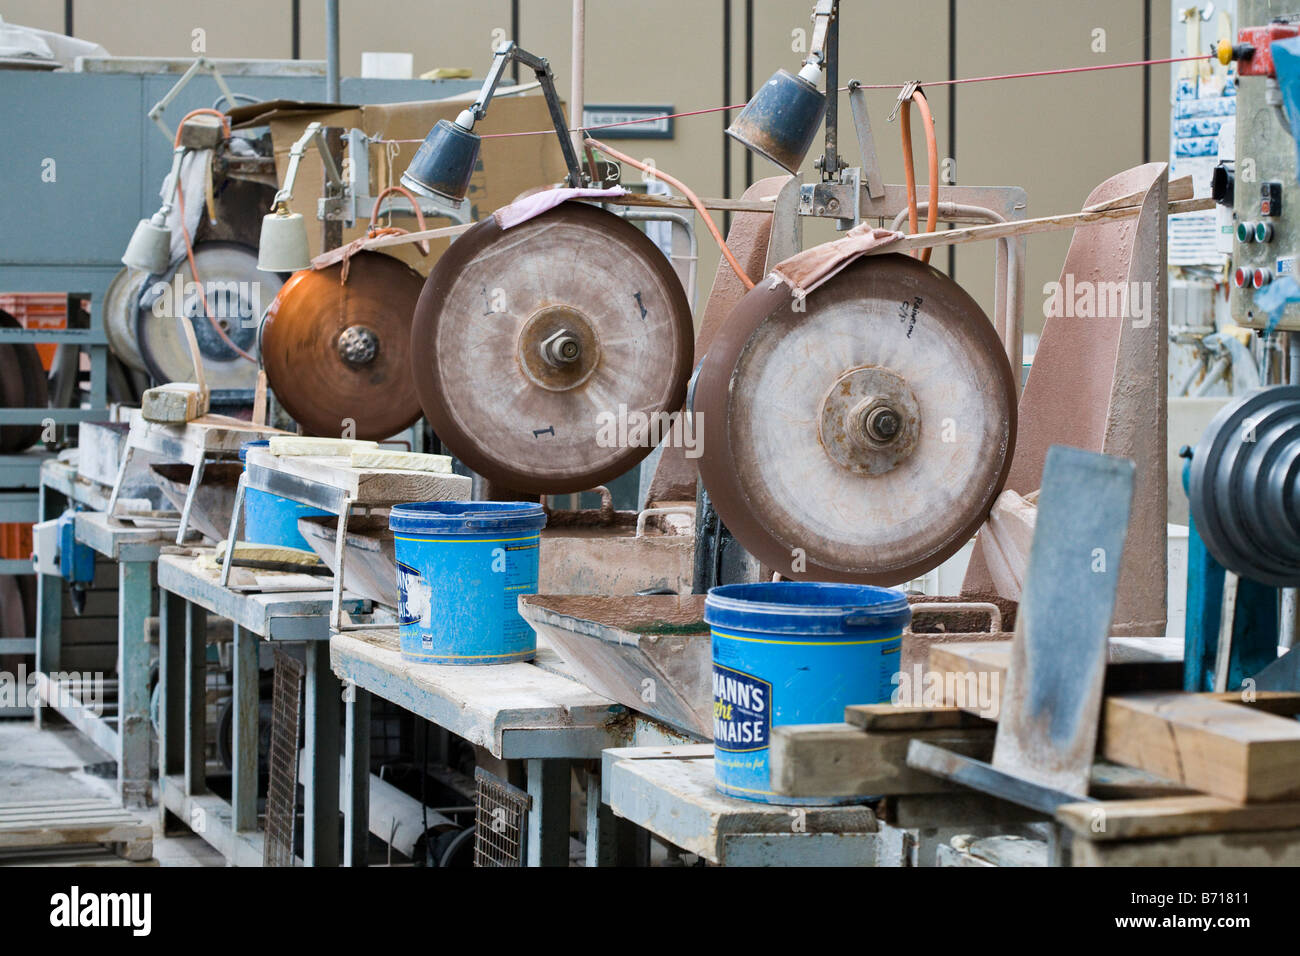 Idle Cutting Stations: A row of idle cutting stations at the Waterford Crystal Factory - Stock Image